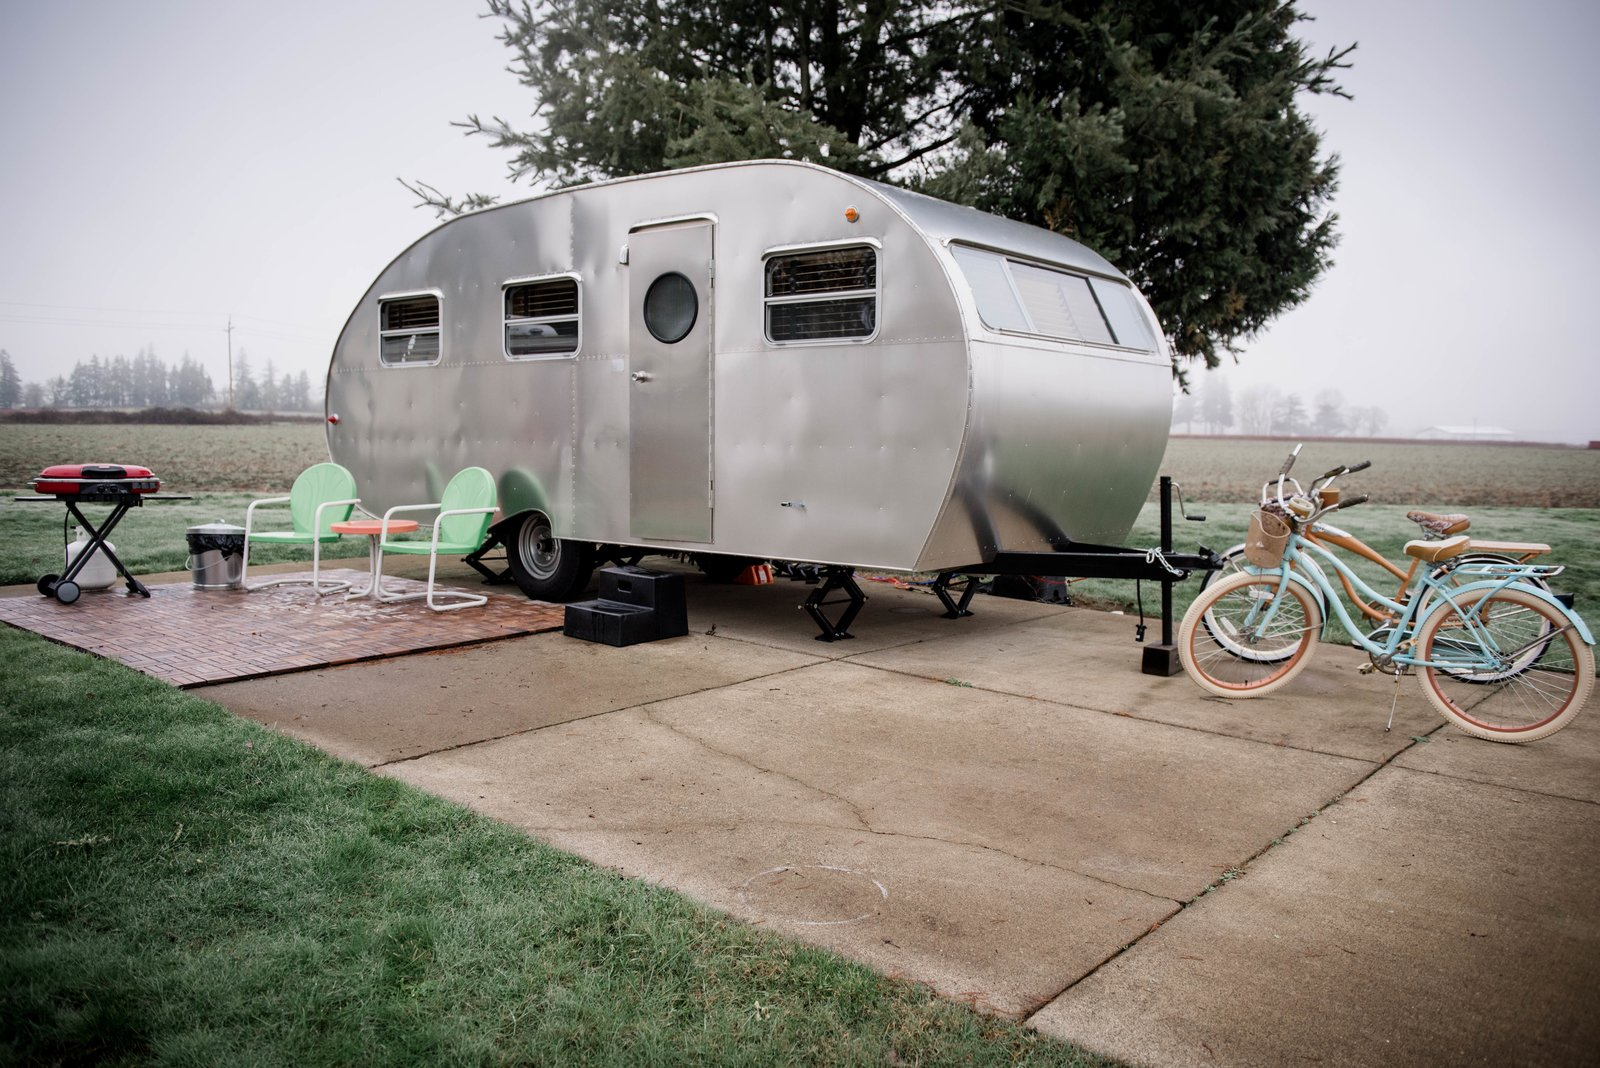 Vintage Inspired Airstream Trailer Parks - Modern Small Living - Dwell